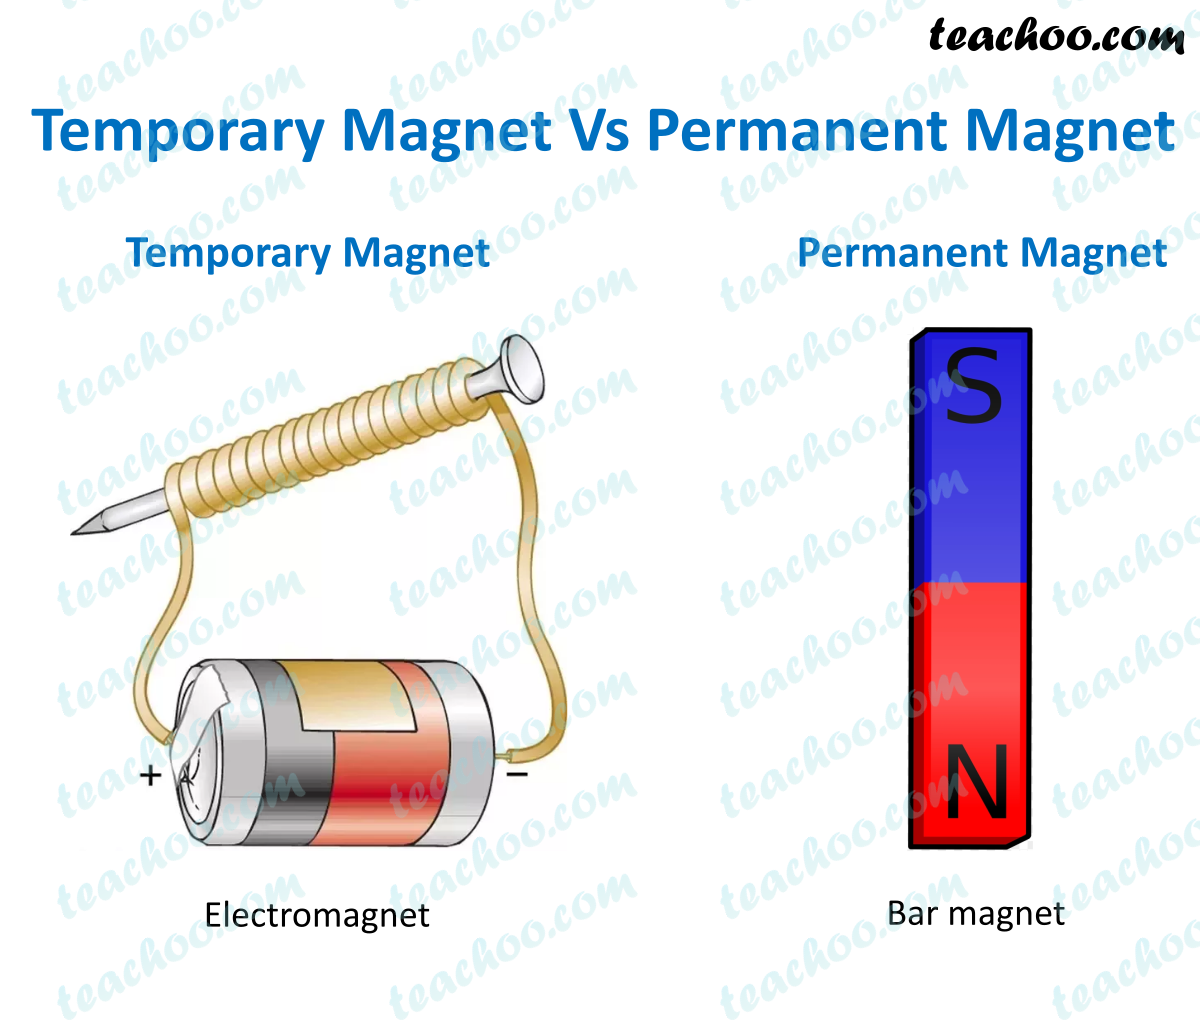 temporary-magnet-vs-permanent-magnet.png